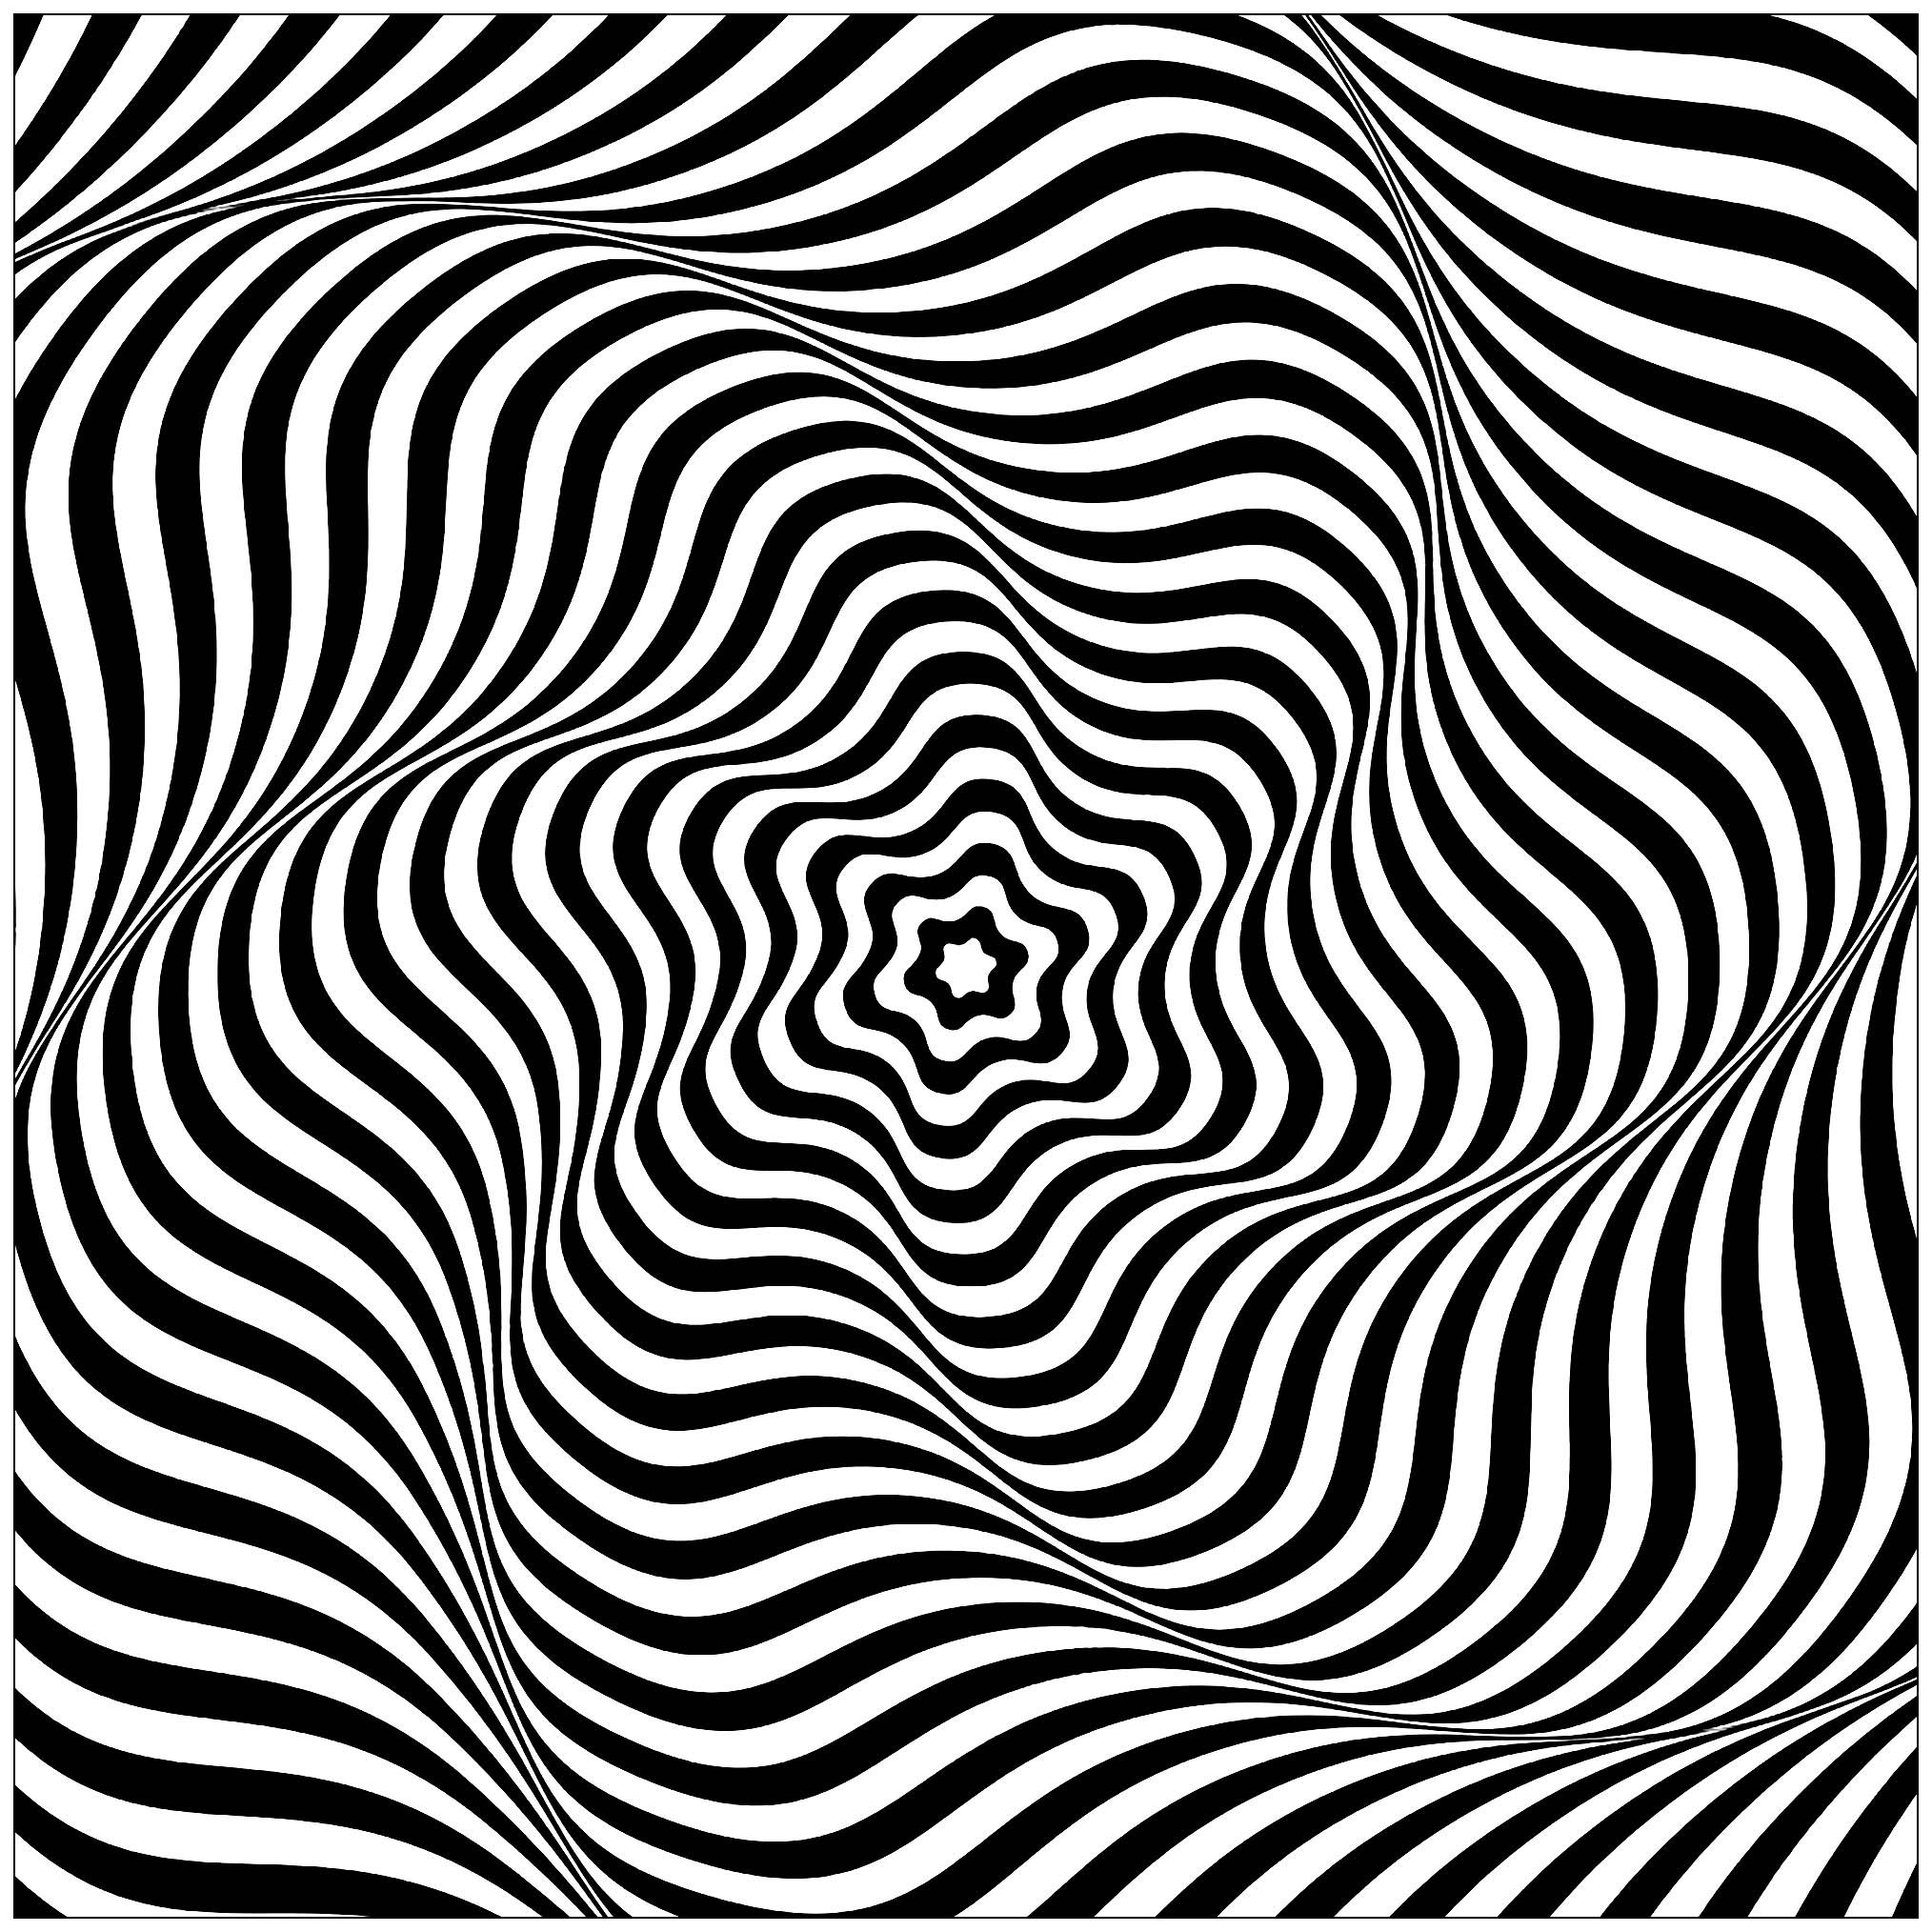 victor vasarely coloring pages | Op art wavy rotary movement - Optical illusion : Wavy ...